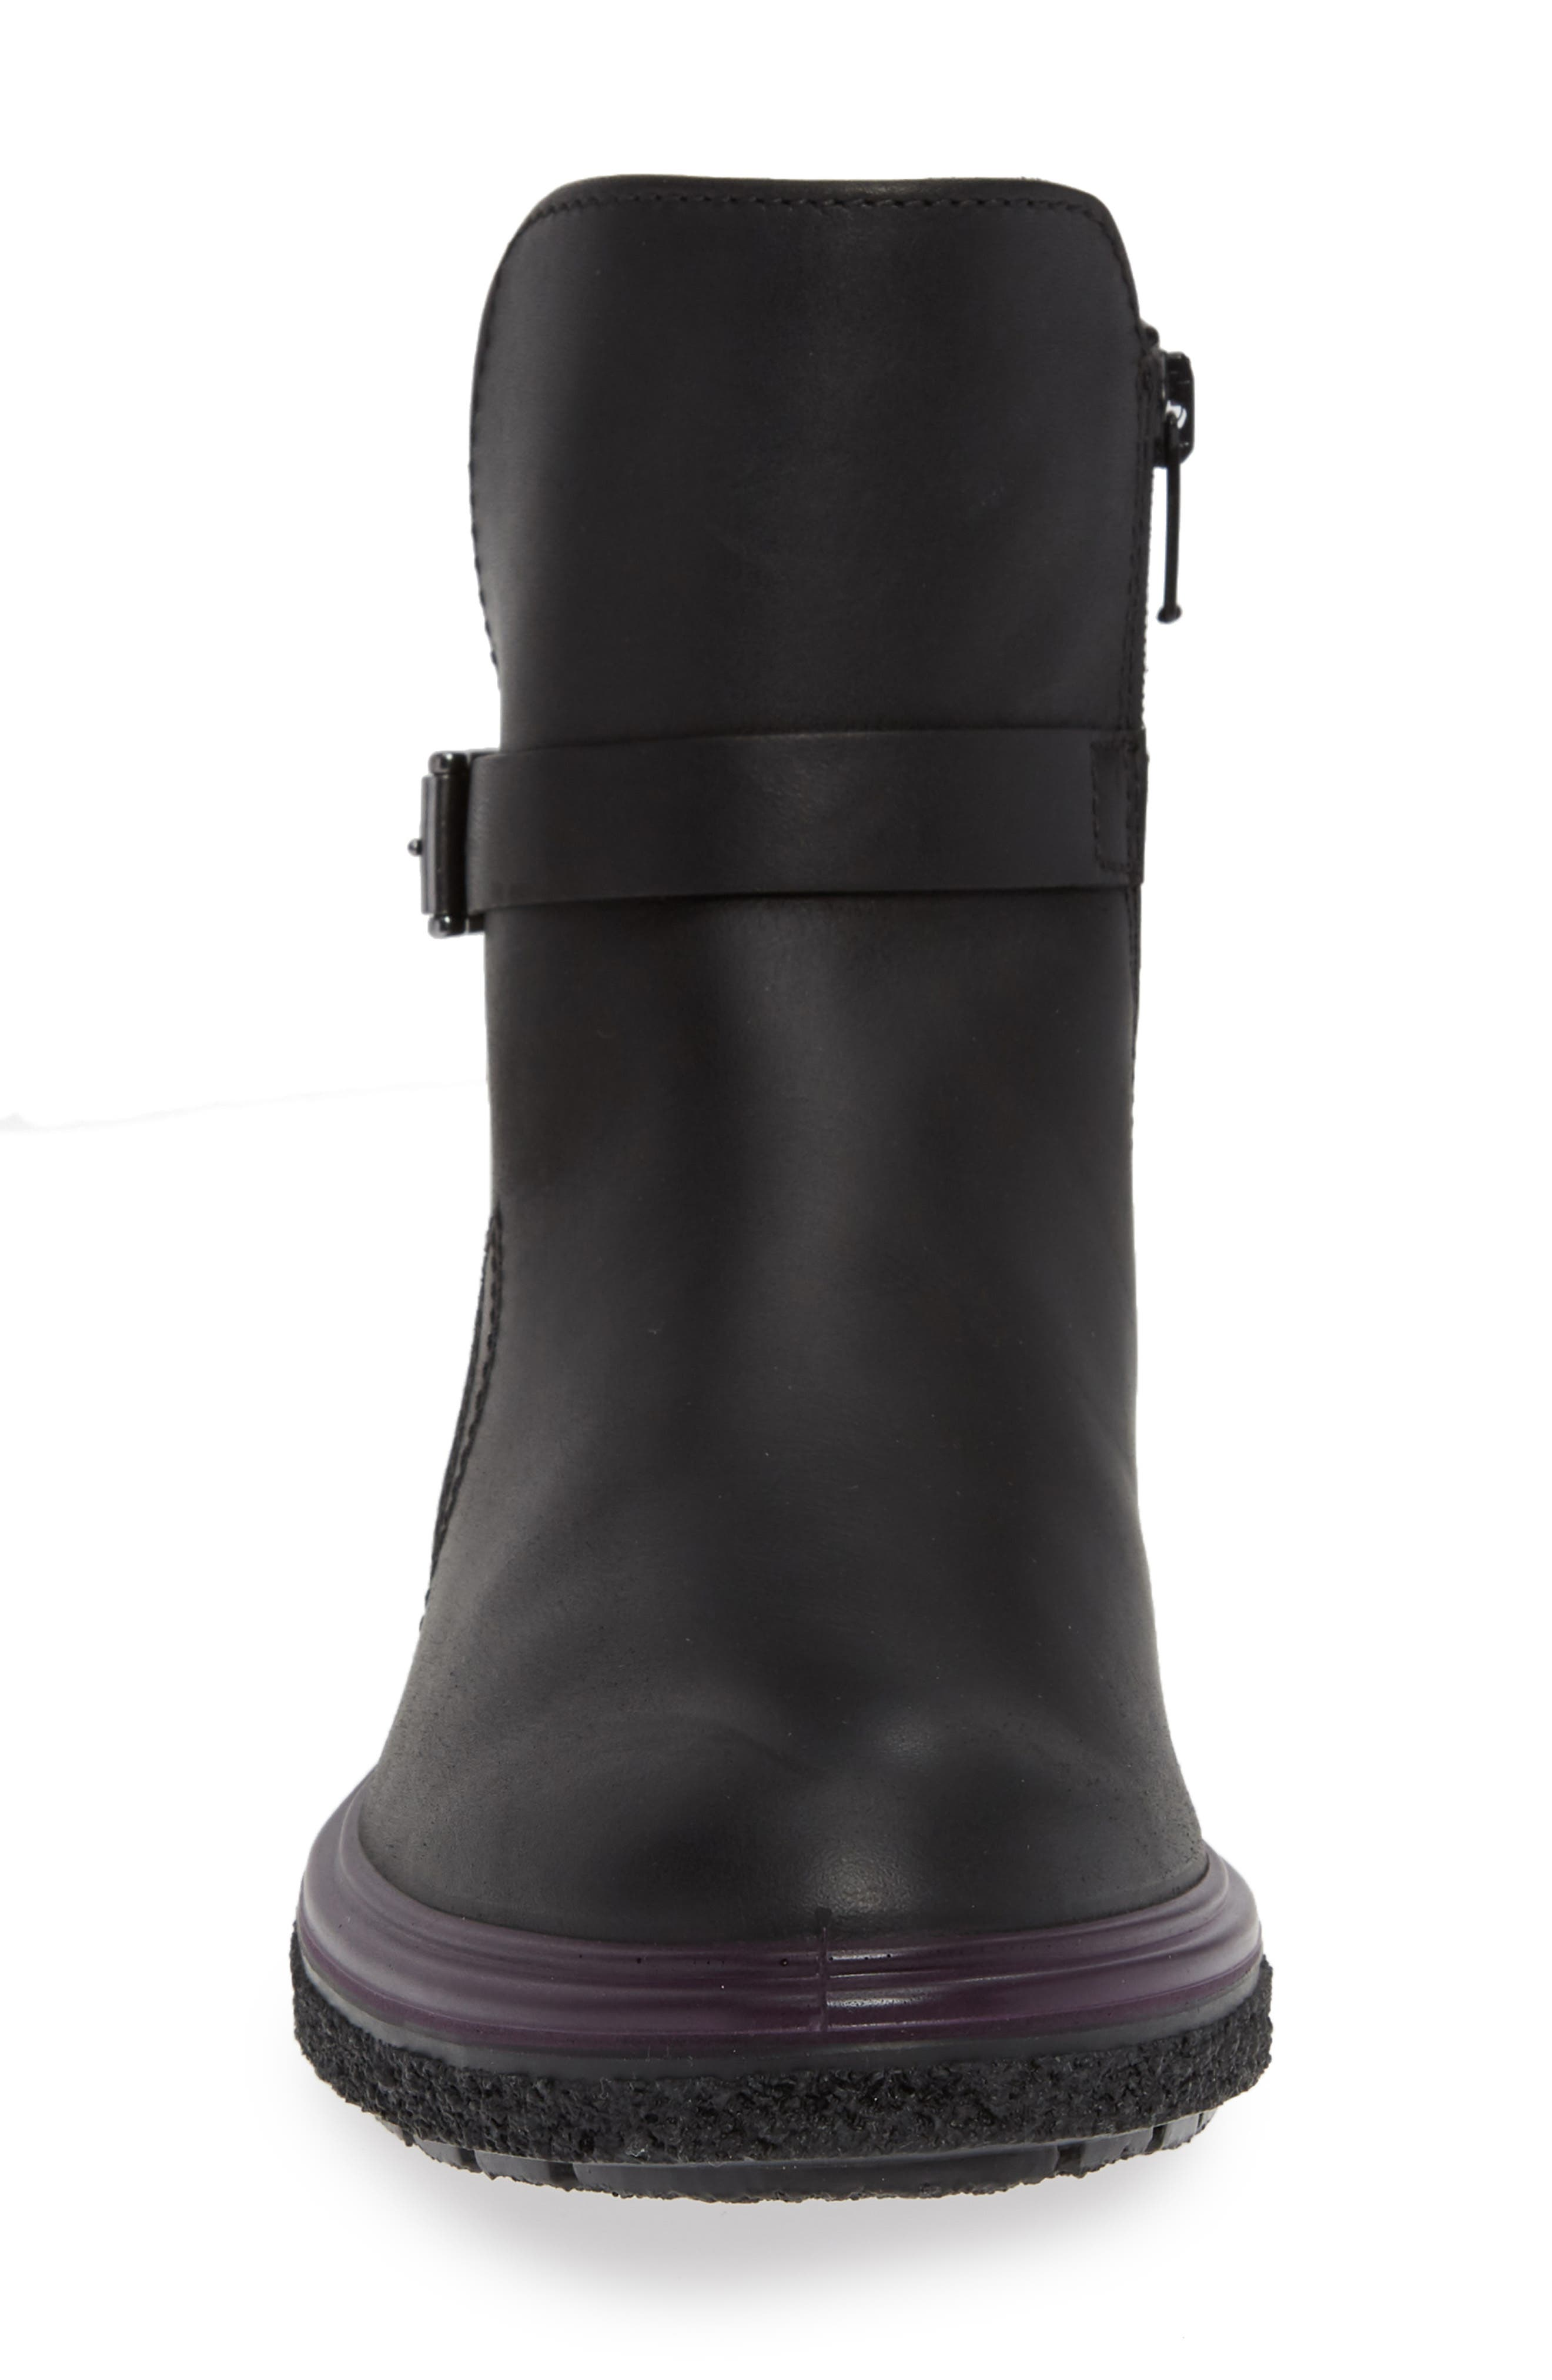 Crepetray GTX Waterproof Bootie,                             Alternate thumbnail 4, color,                             BLACK LEATHER